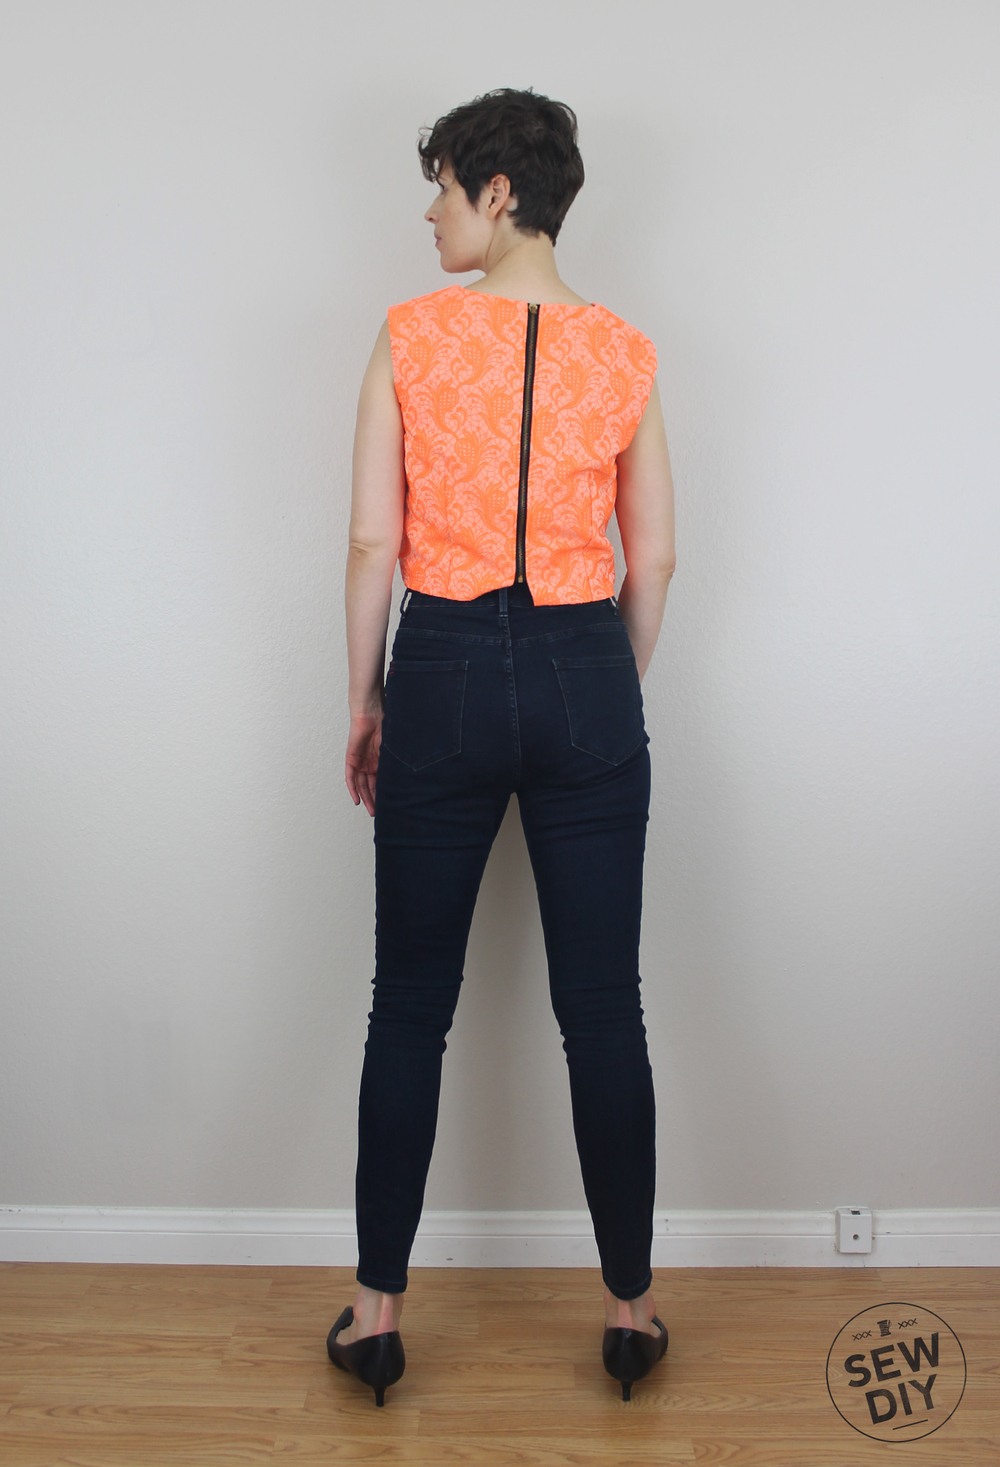 Sew DIY Brocade Crop Top Back